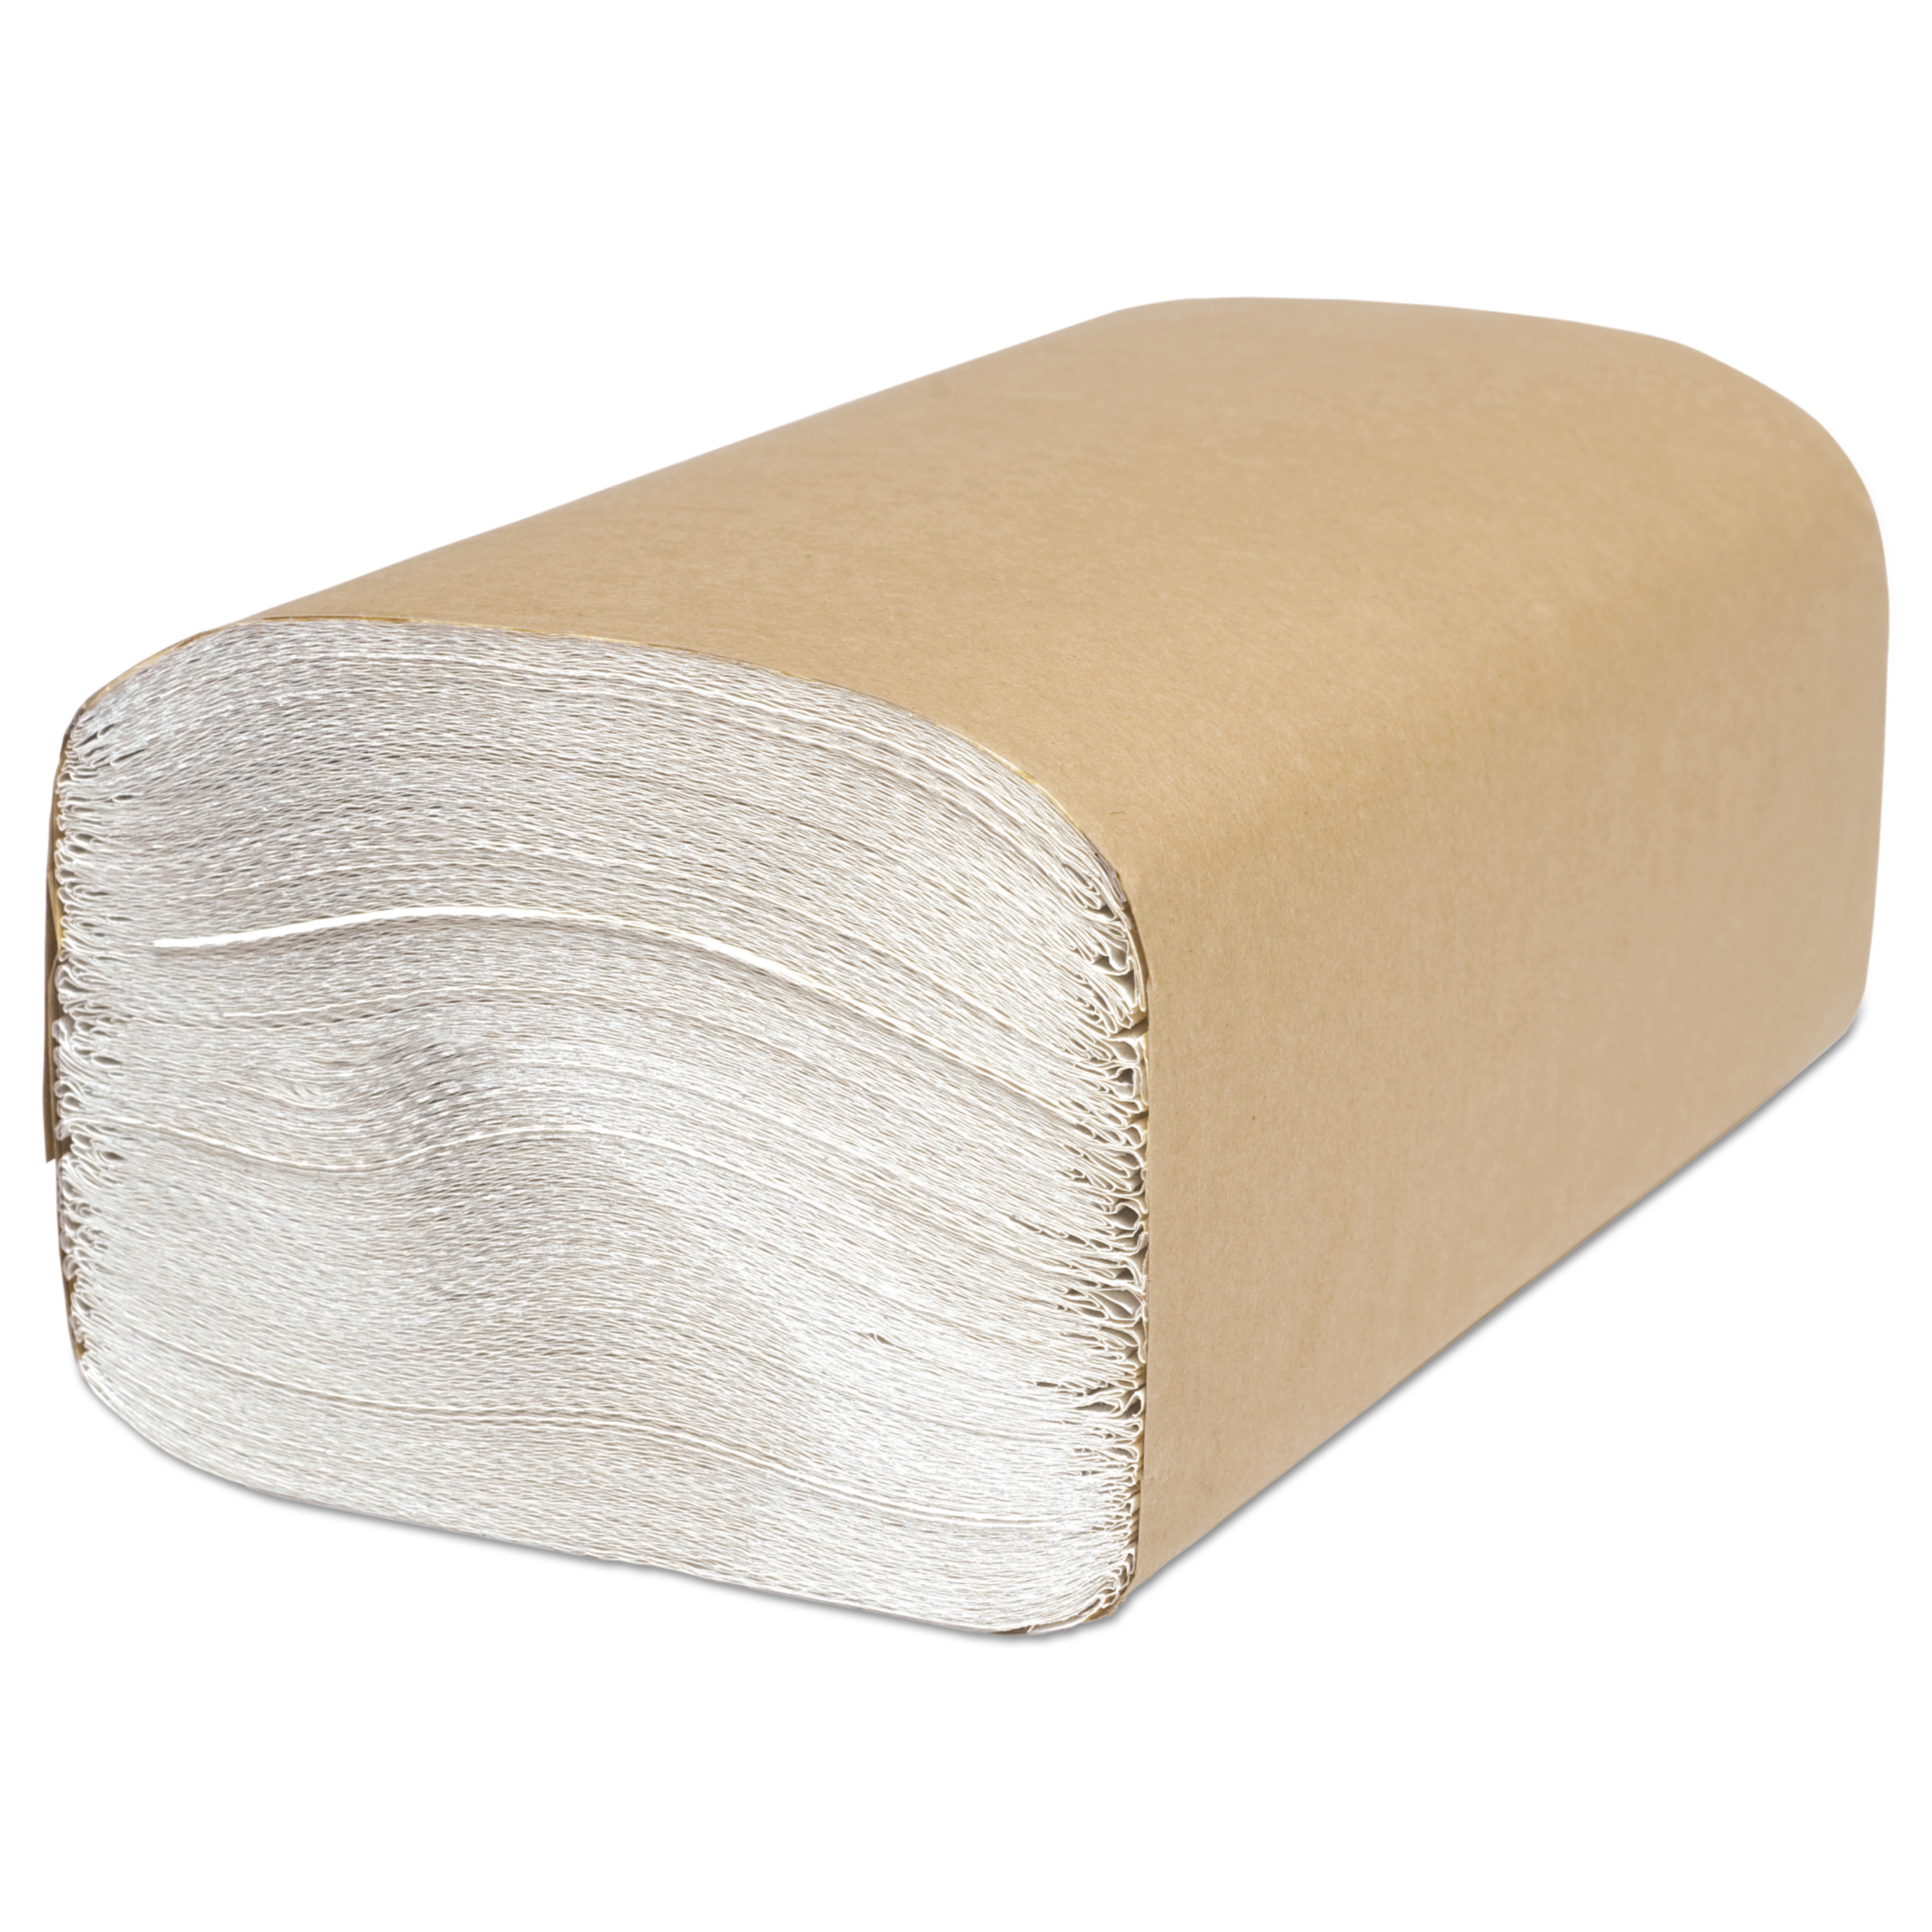 Cascades Decor Folded Single-Fold Towels, White, 250 count, (Pack of 16)